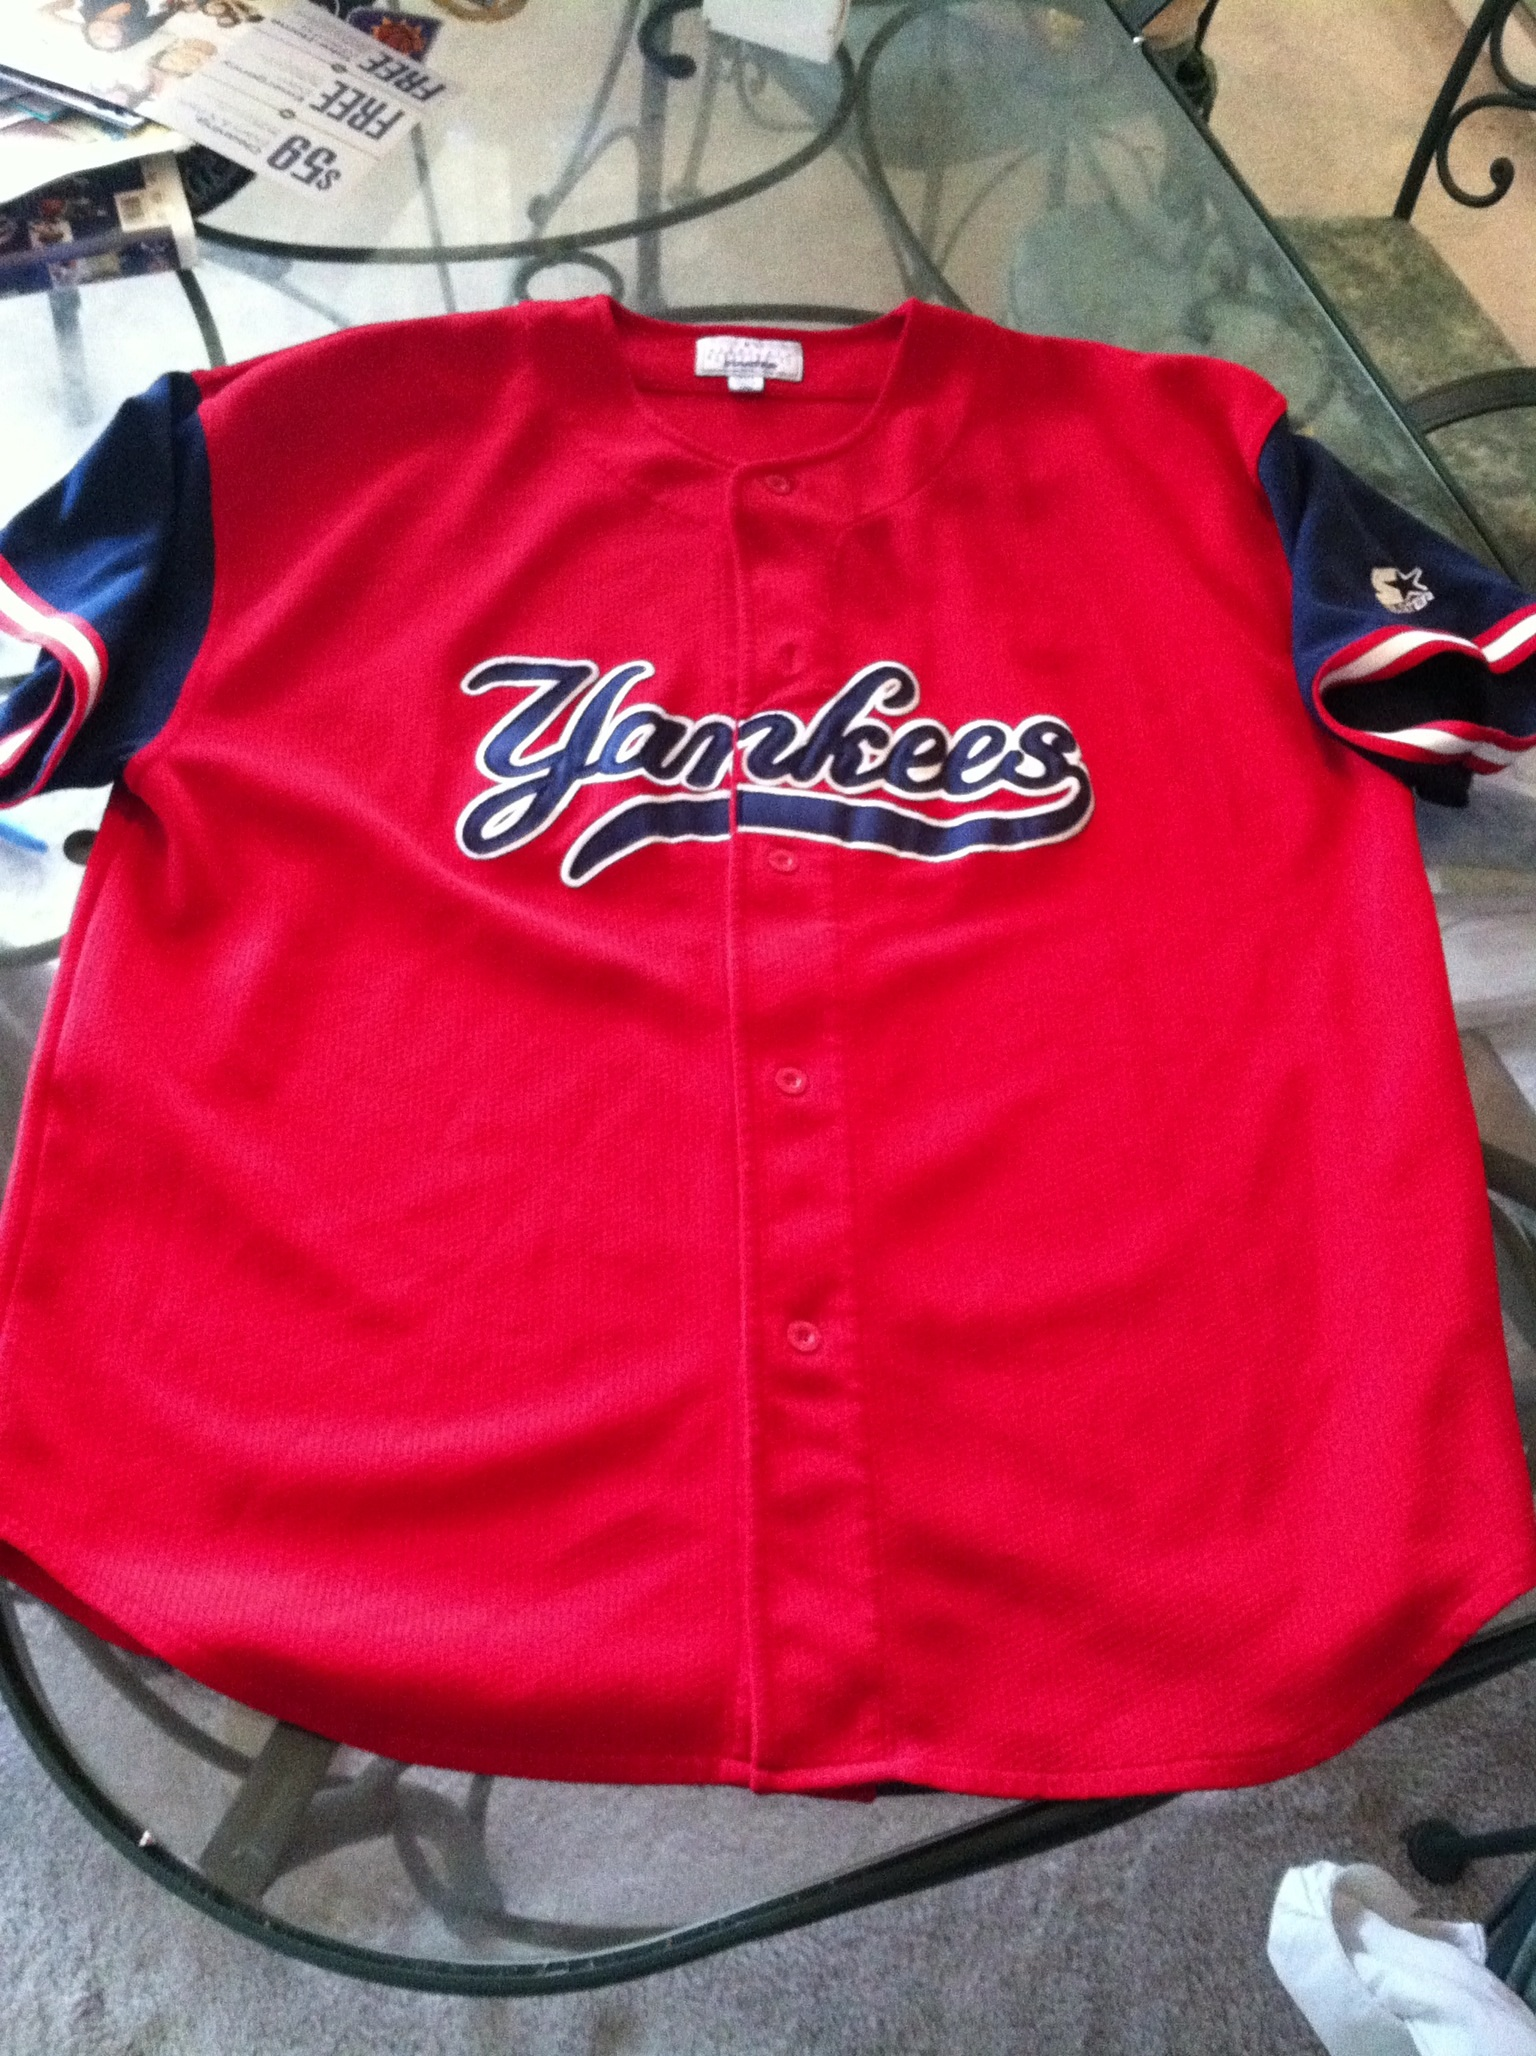 Yankees starter jersey · Thevintagemann · Online Store Powered by ... 224800226c8